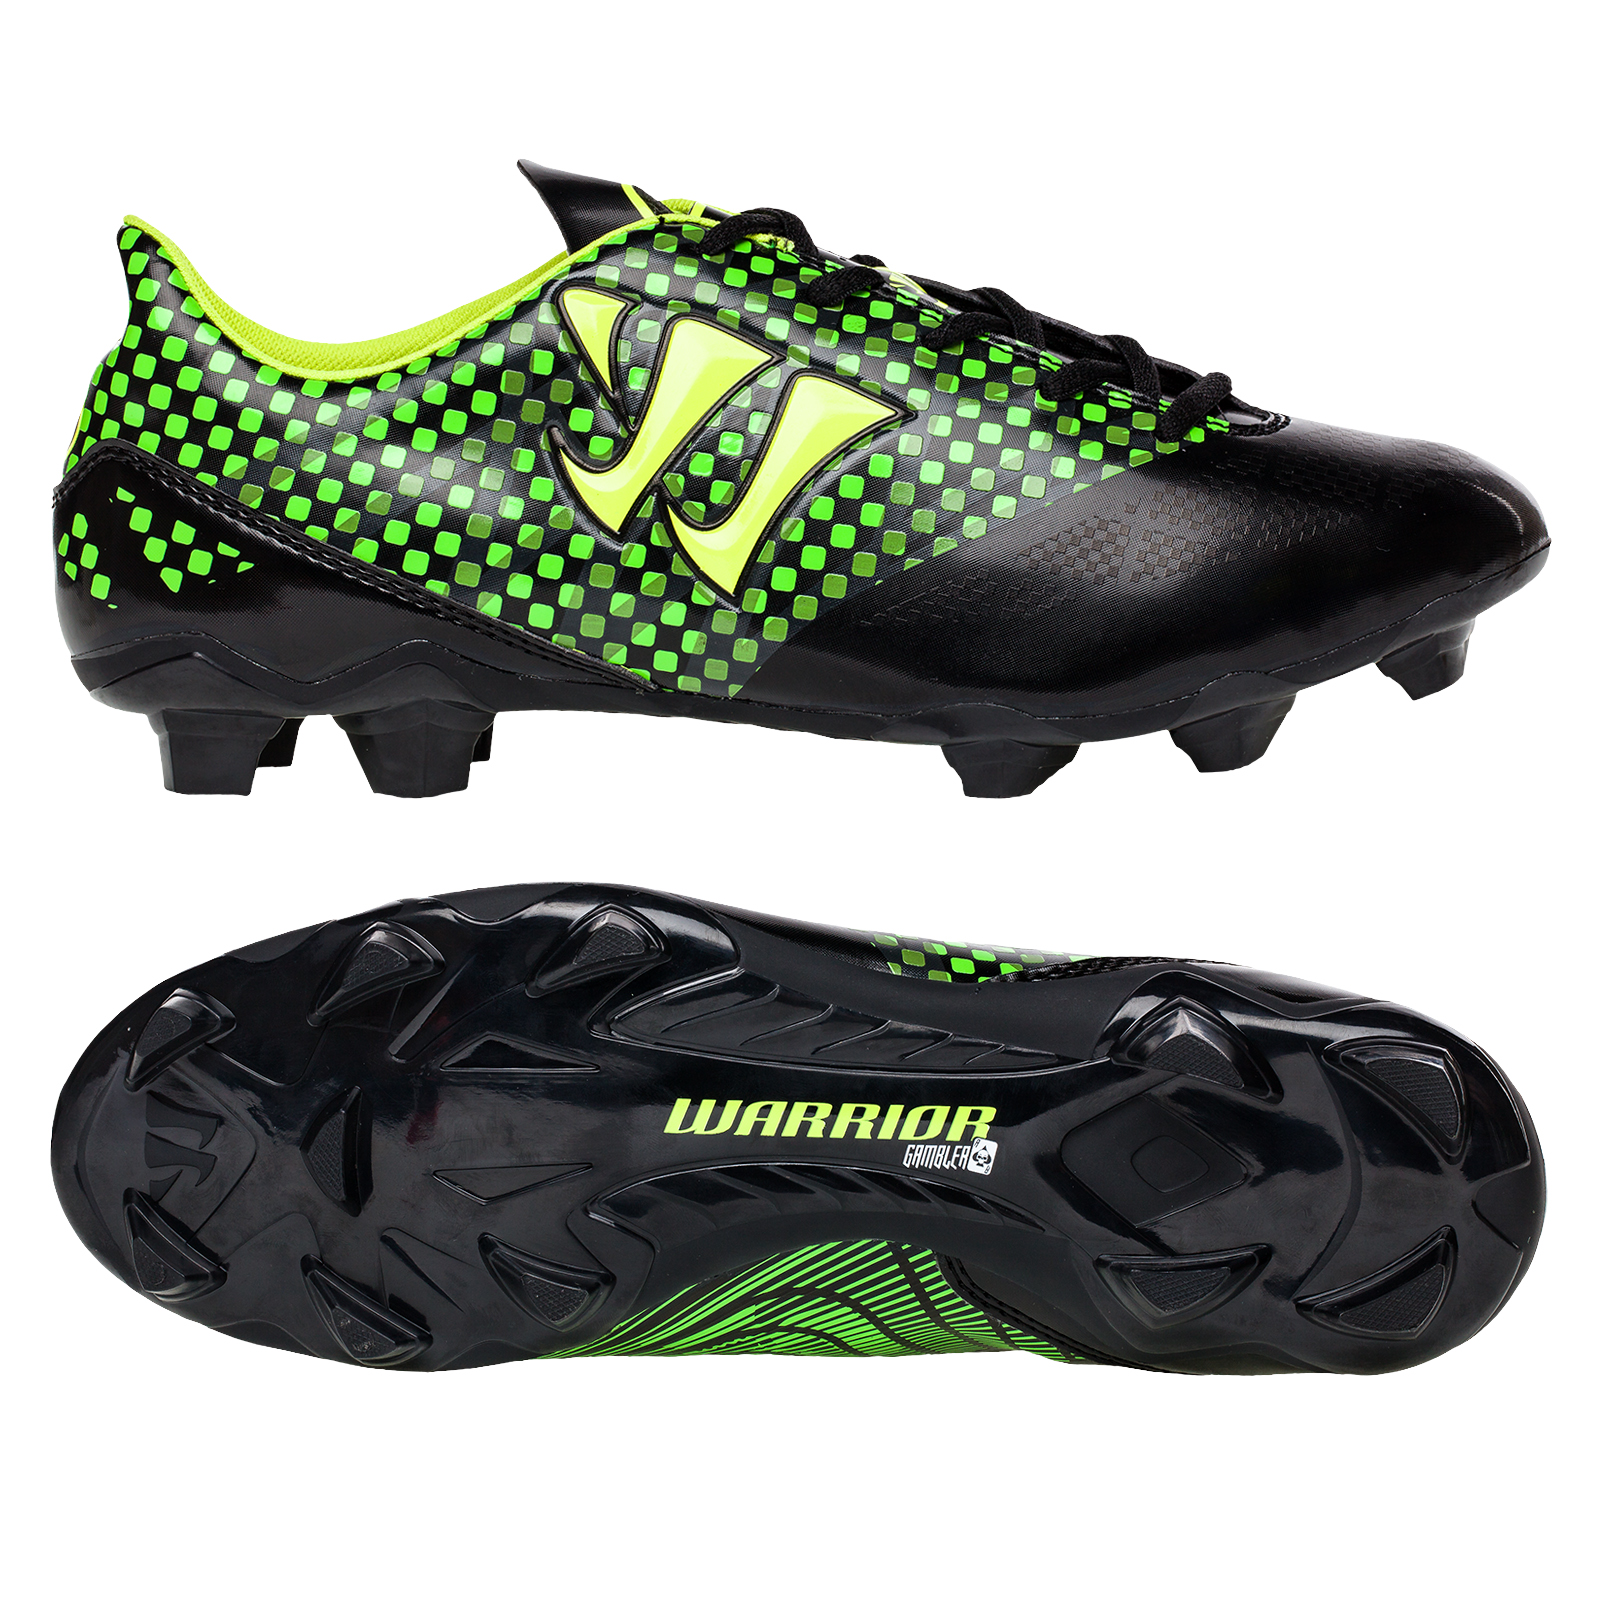 Warrior Sports Gambler Combat Firm Ground Football Boots -Blk/Green Black